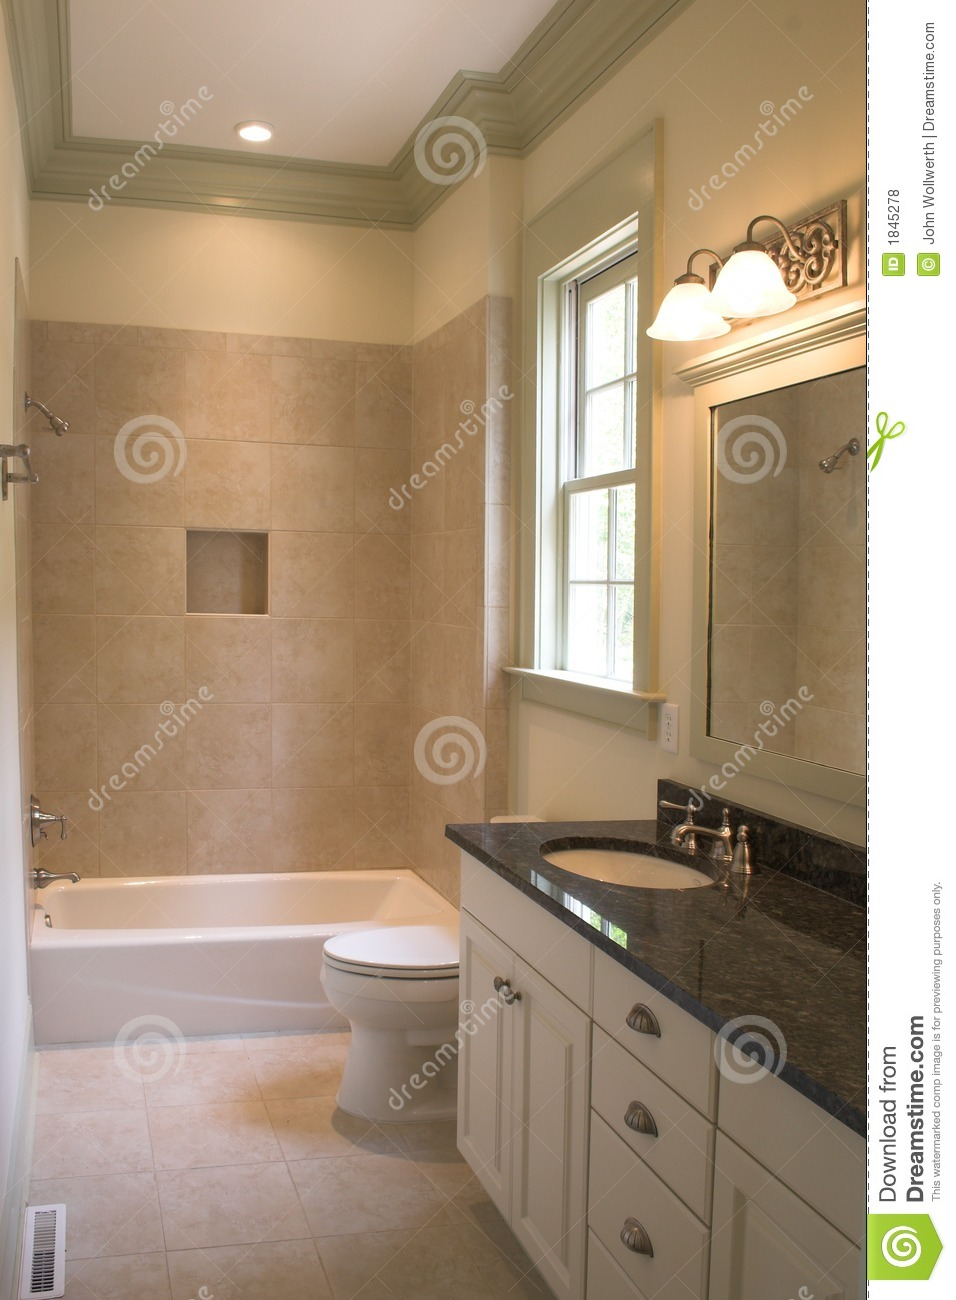 Simple bathroom with tile and stone stock photo image of bathtub inside 1845278 Simple contemporary bathroom design